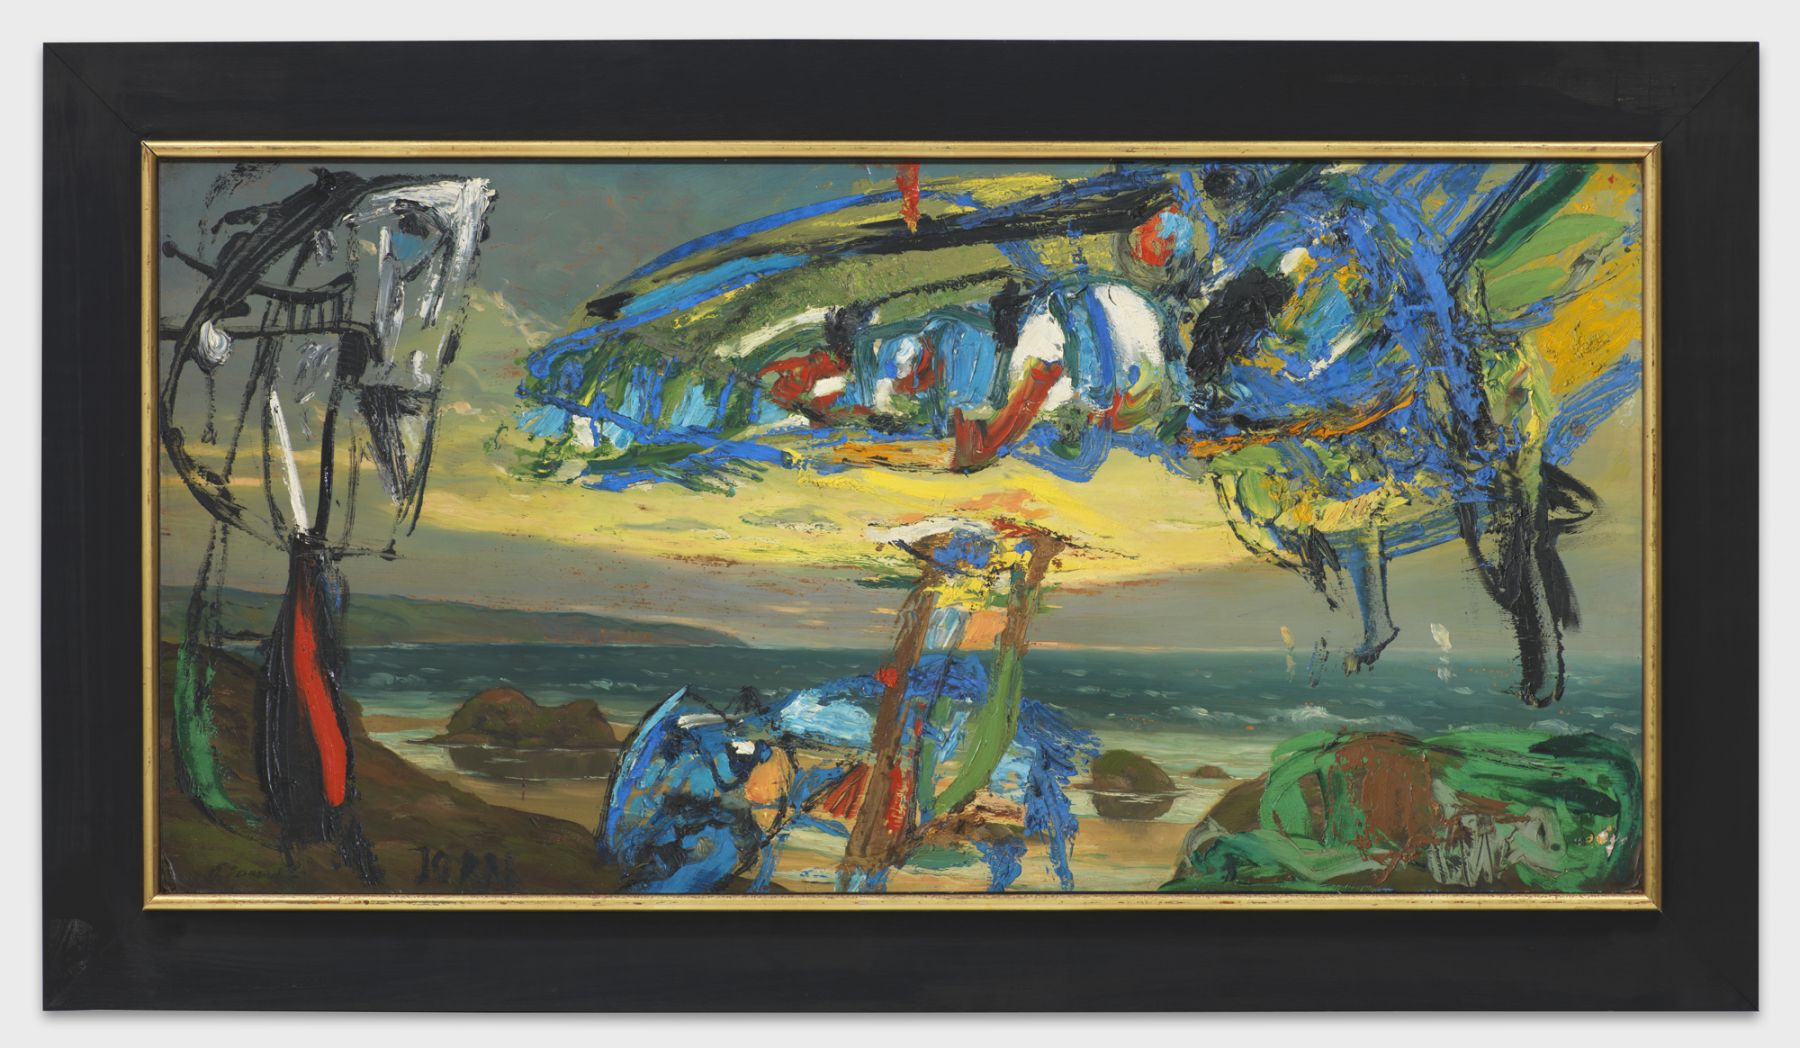 Asger Jorn, Le Hollandais Volant (Modification) -The Flying Dutchman